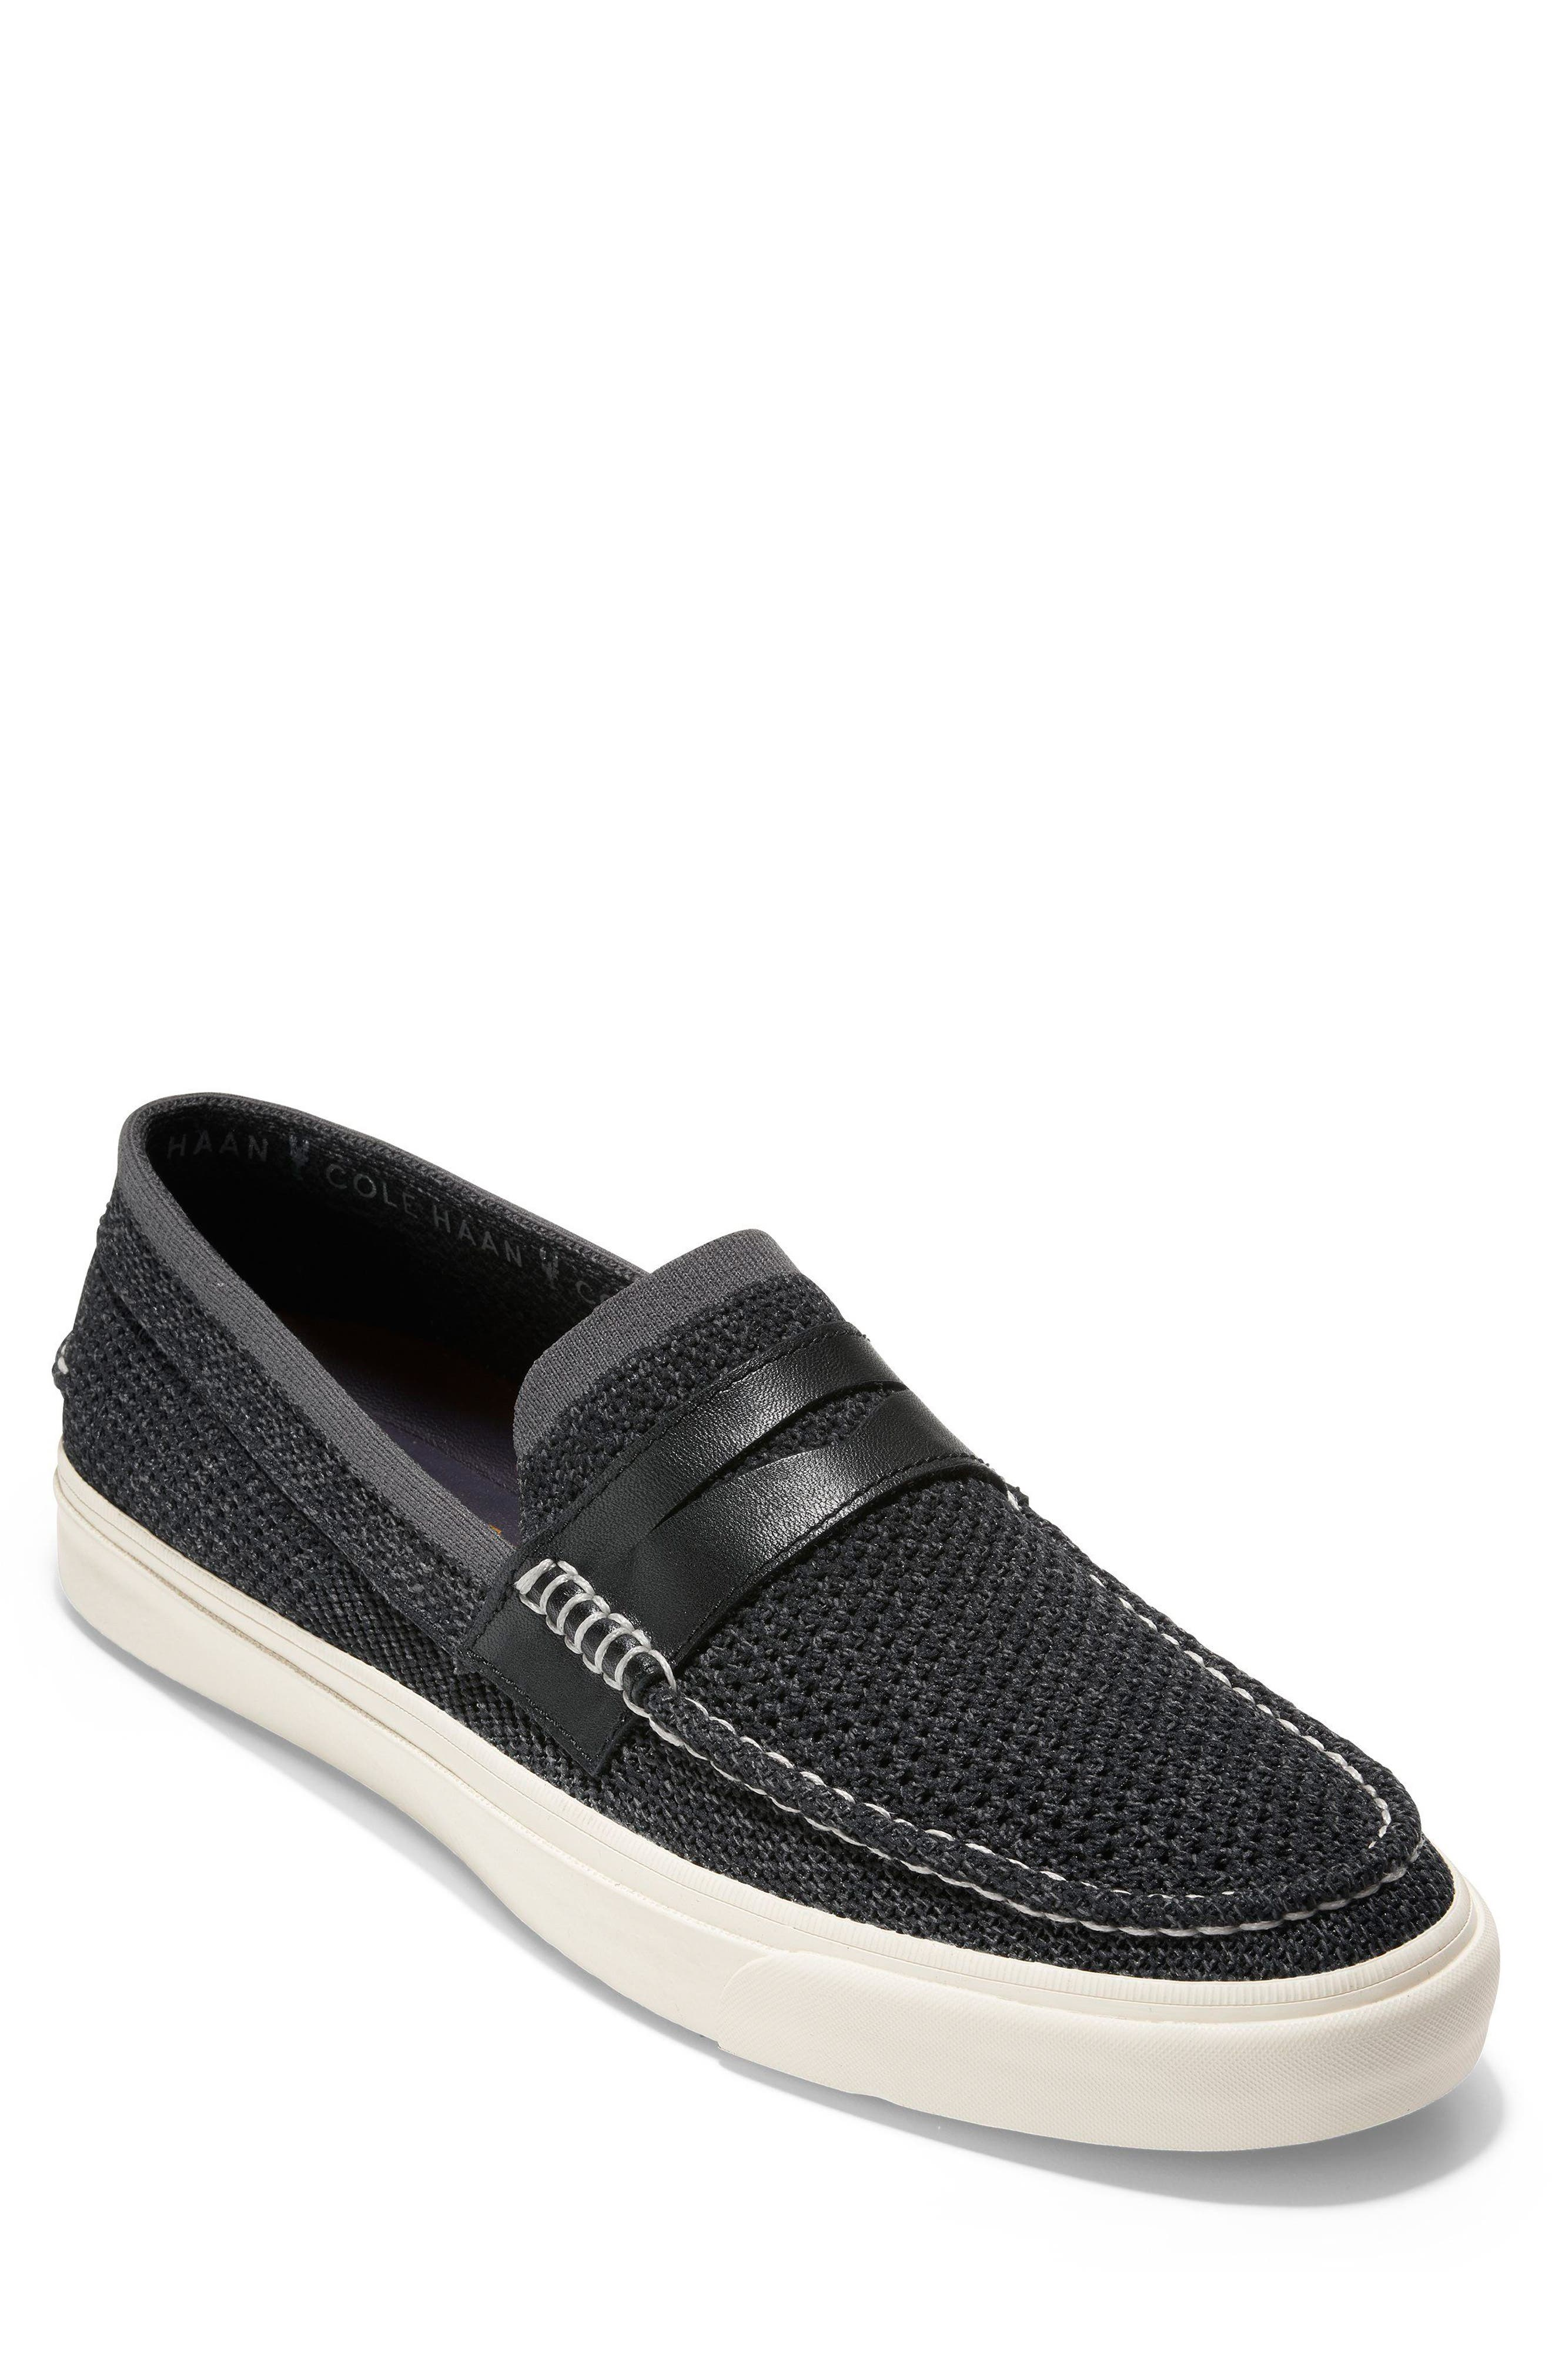 Pinch Weekend Stitch Penny Loafer,                         Main,                         color, BLACK MAGNET